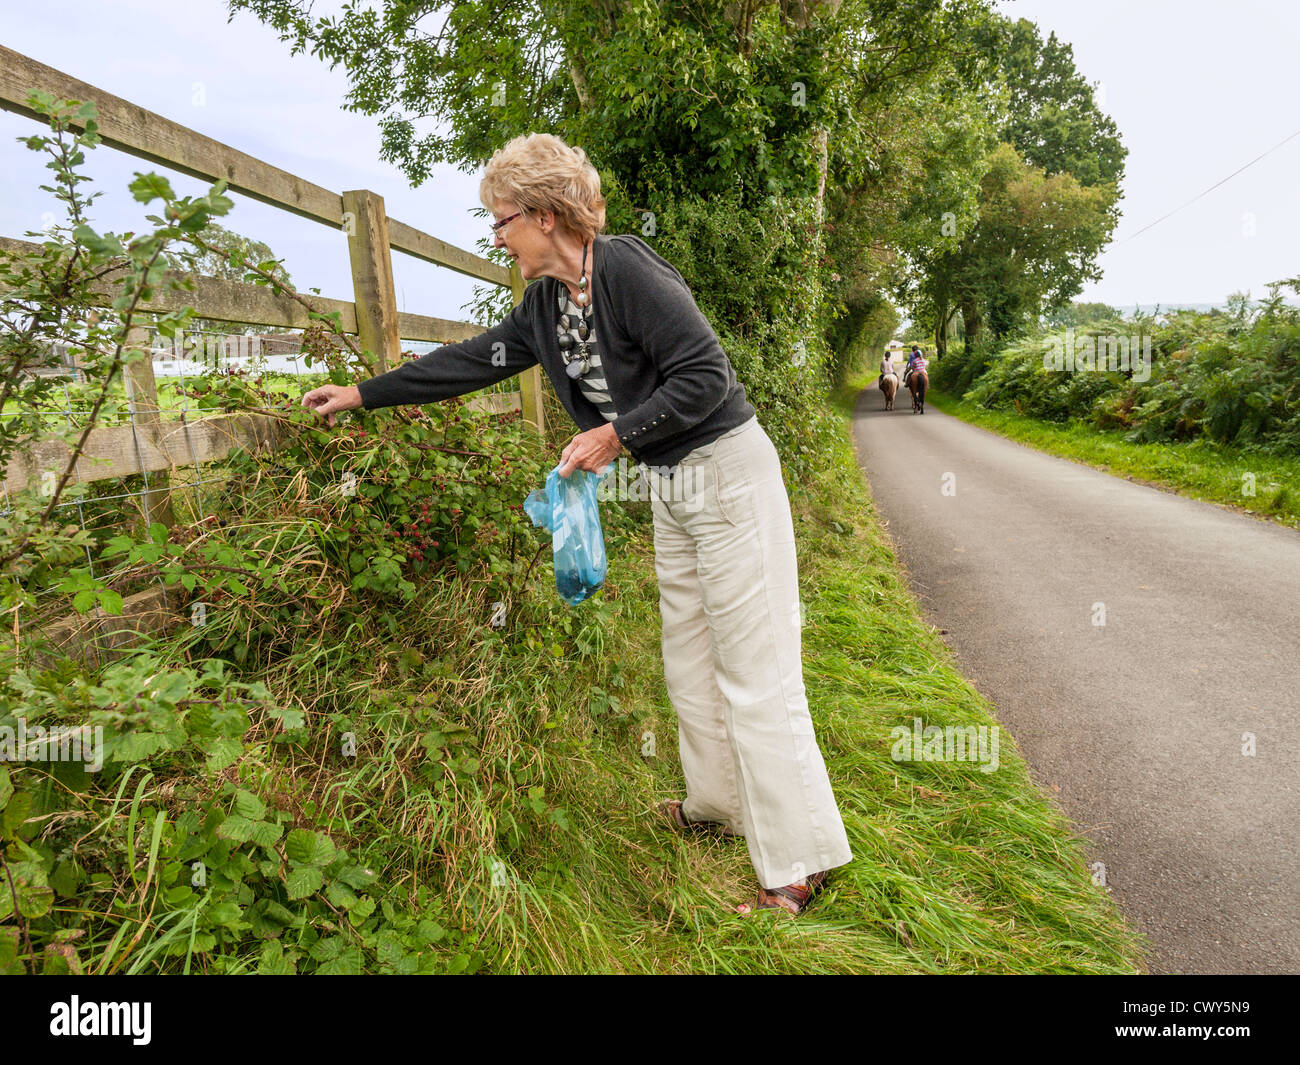 LADY PENSIONER FORAGING FOR BLACKBERRIES IN COUNTRY LANE WITH HORSES AND RIDERS IN BACKGROUND GLOUCESTERSHIRE UK - Stock Image